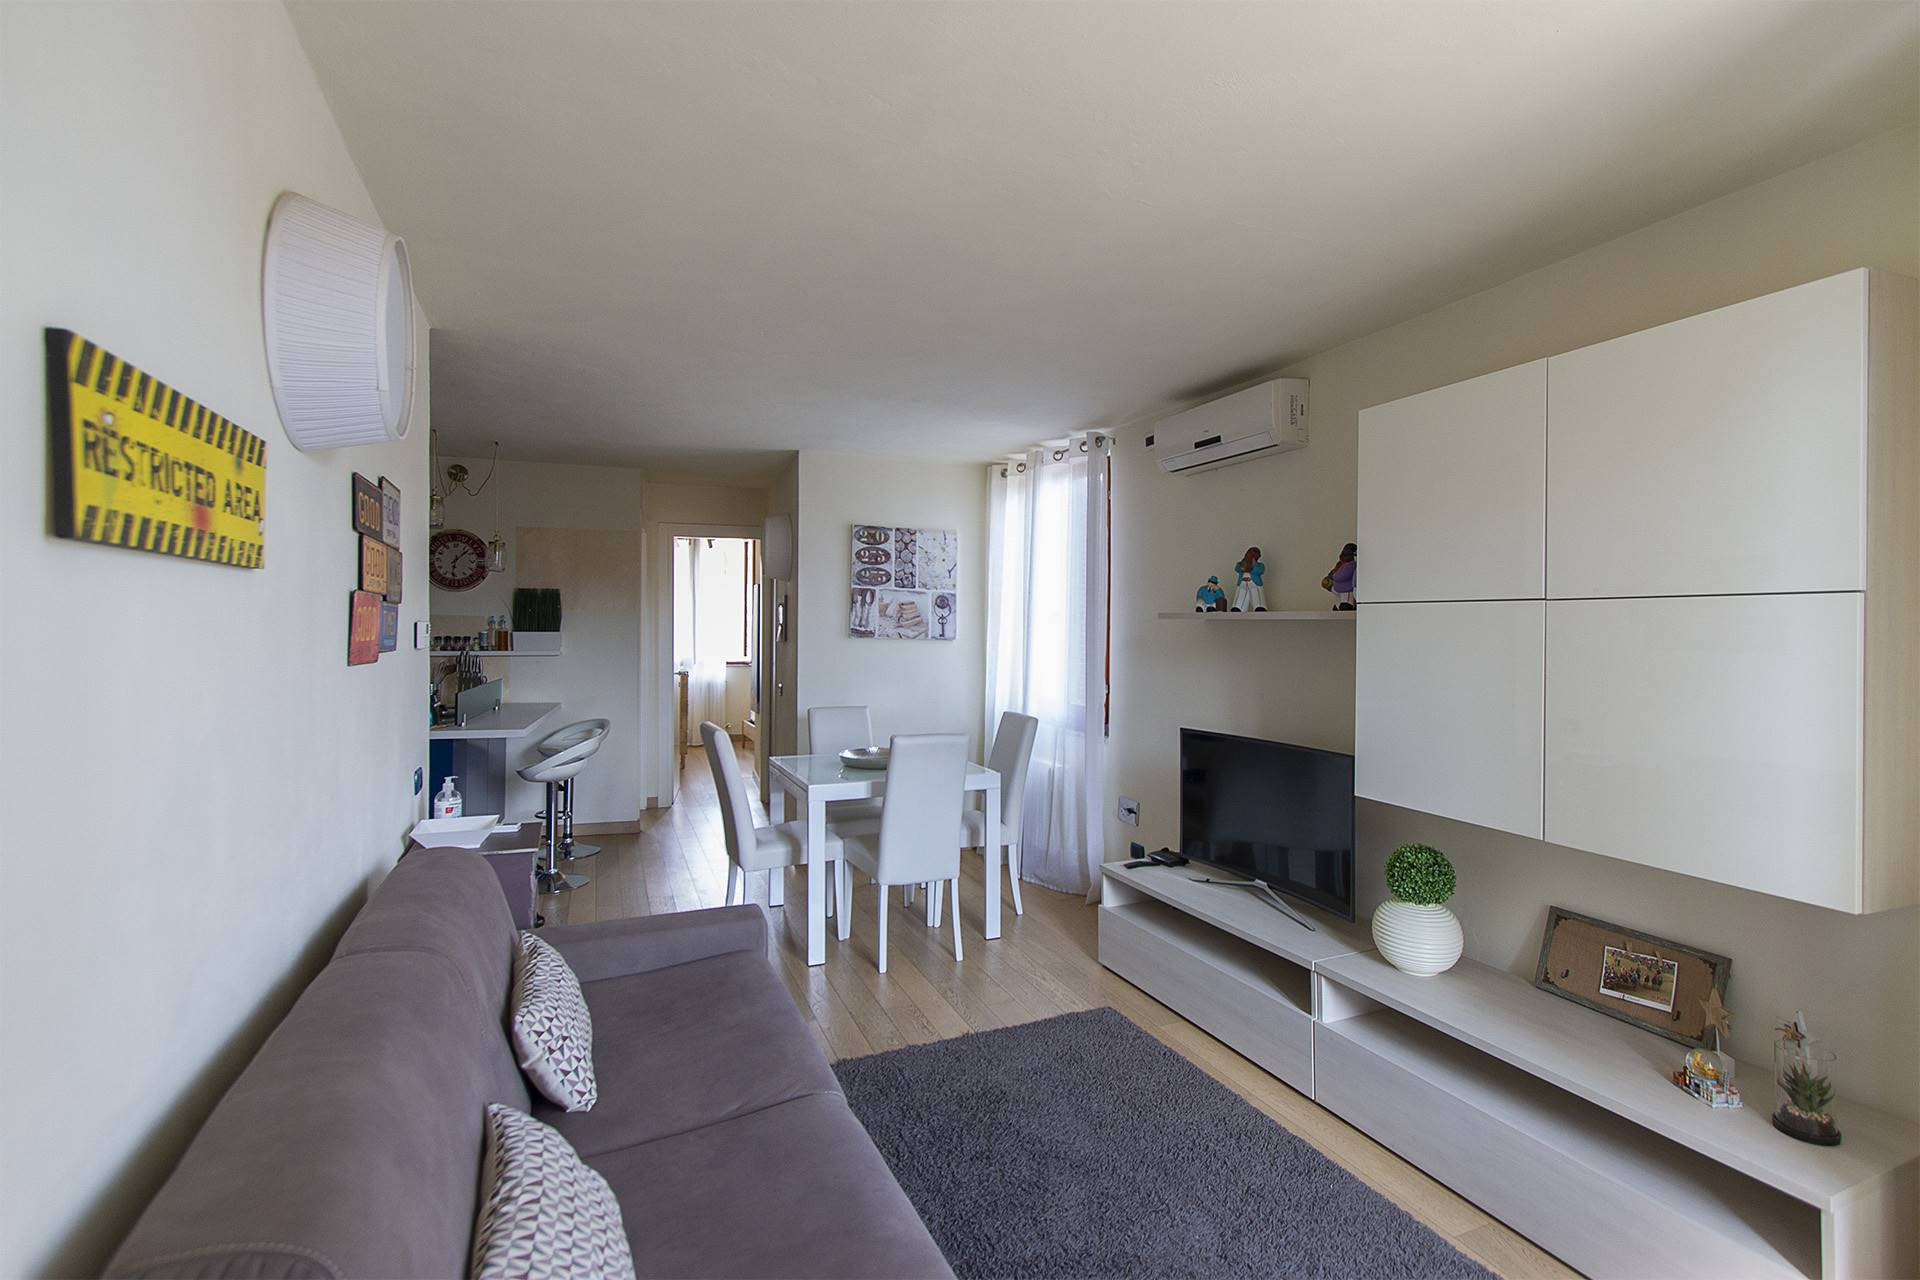 An enchanting apartment, recently renovated and finely furnished. The property is located on the top floor of a historic building, close to the main points of interest of the centre and the main